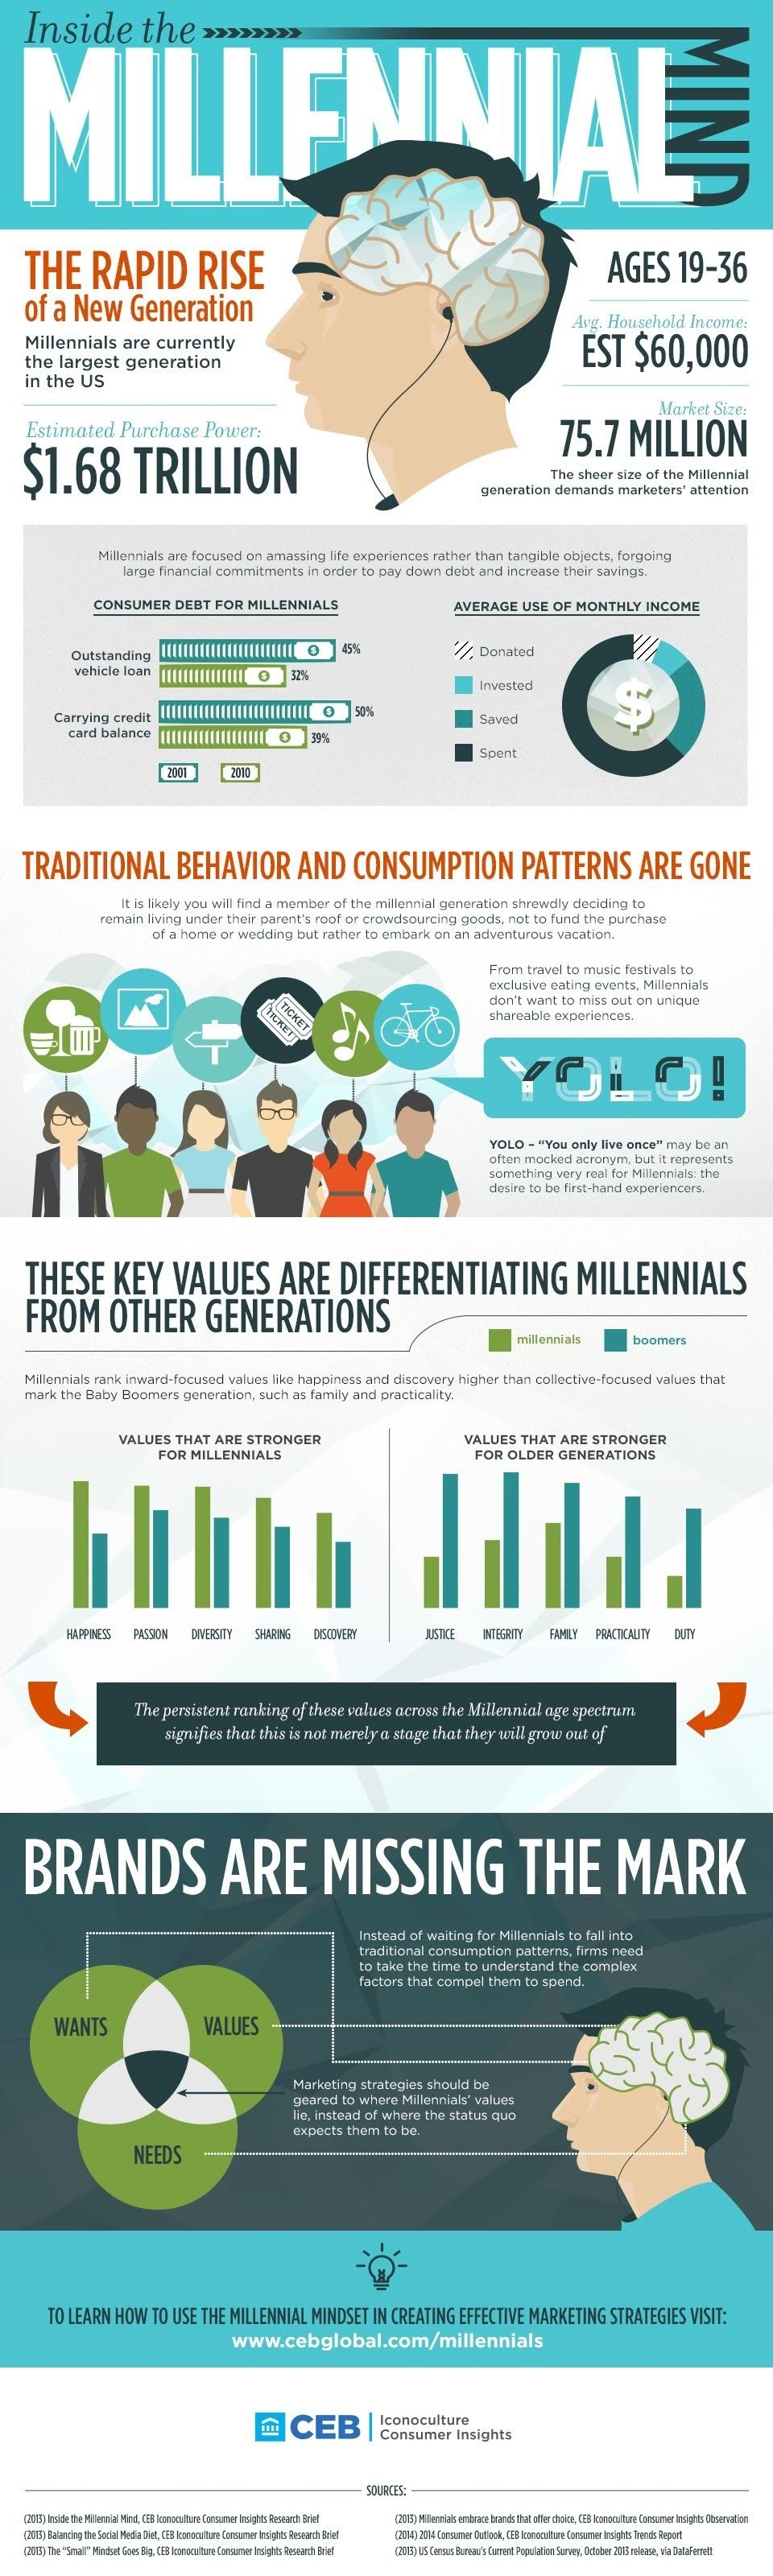 Inside The Millennial Mind The Rapid Rise Of New Generation #infographic